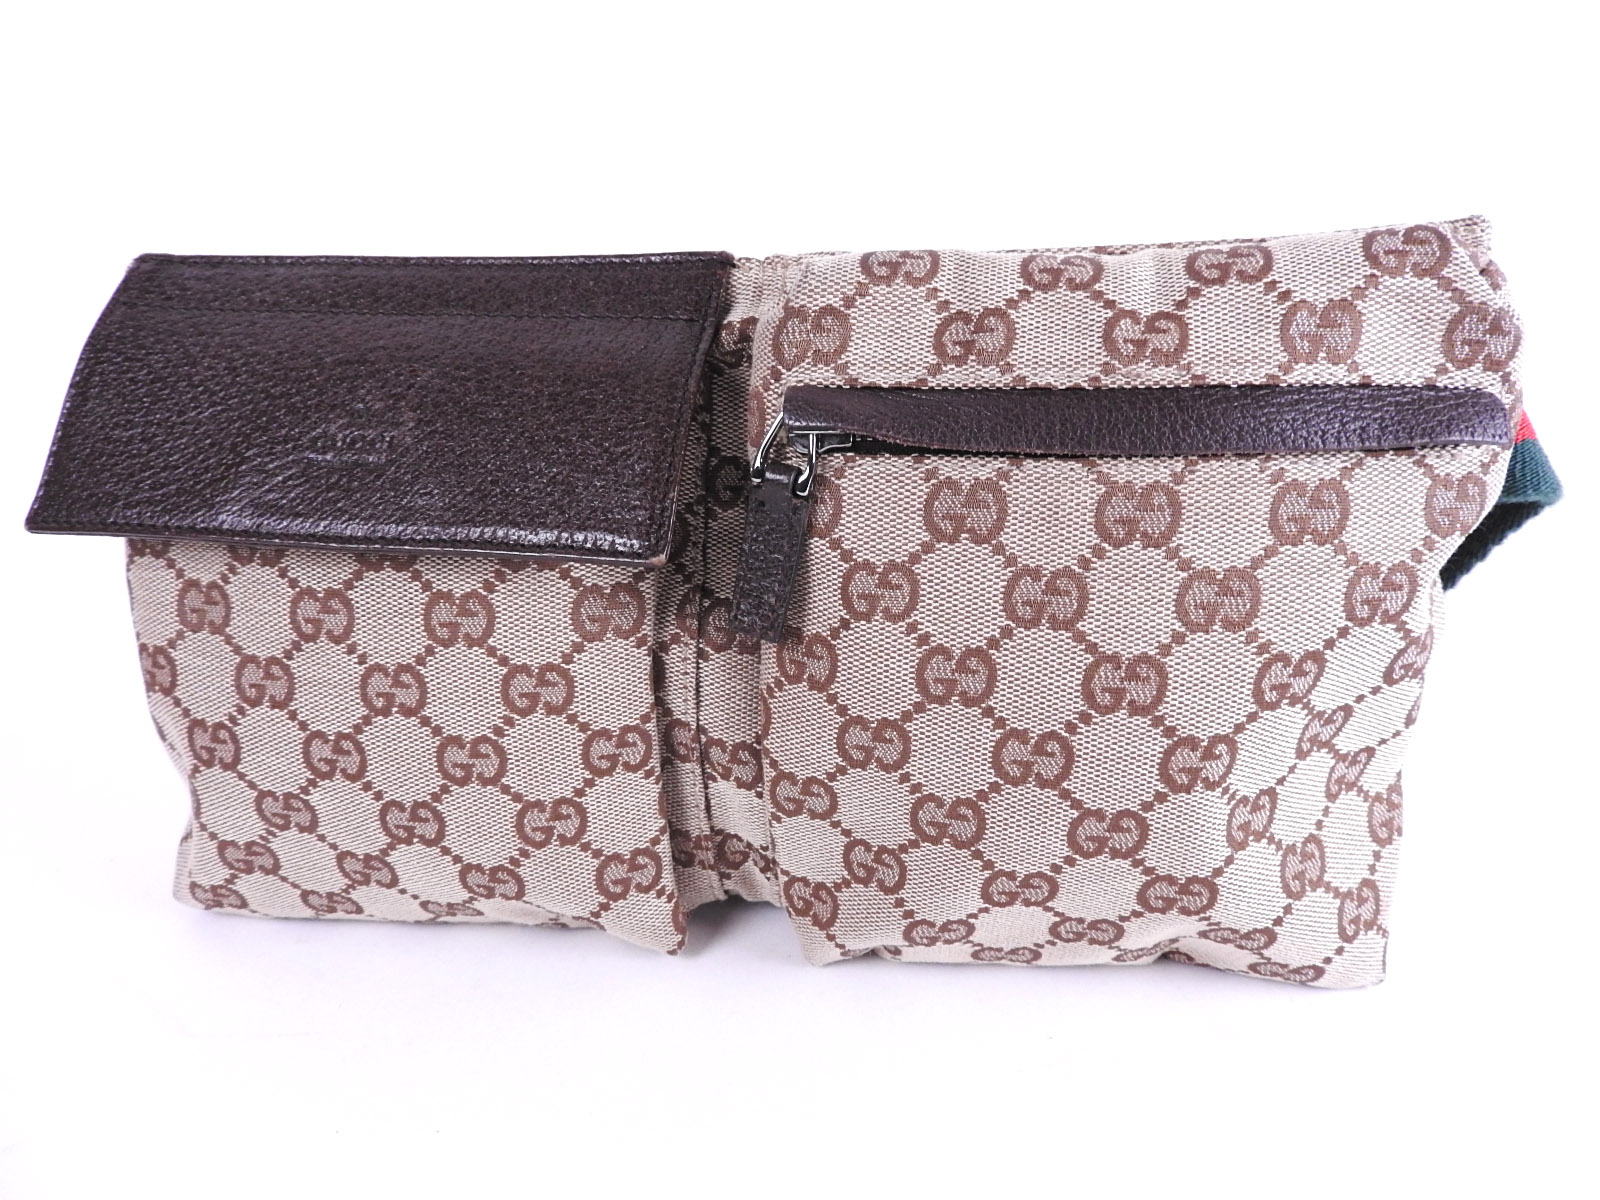 a47474965eb Auth GUCCI Sherry Web GG Canvas Leather Waist Belt Pouch Body Bag Beige  Brown 28566 A-8513